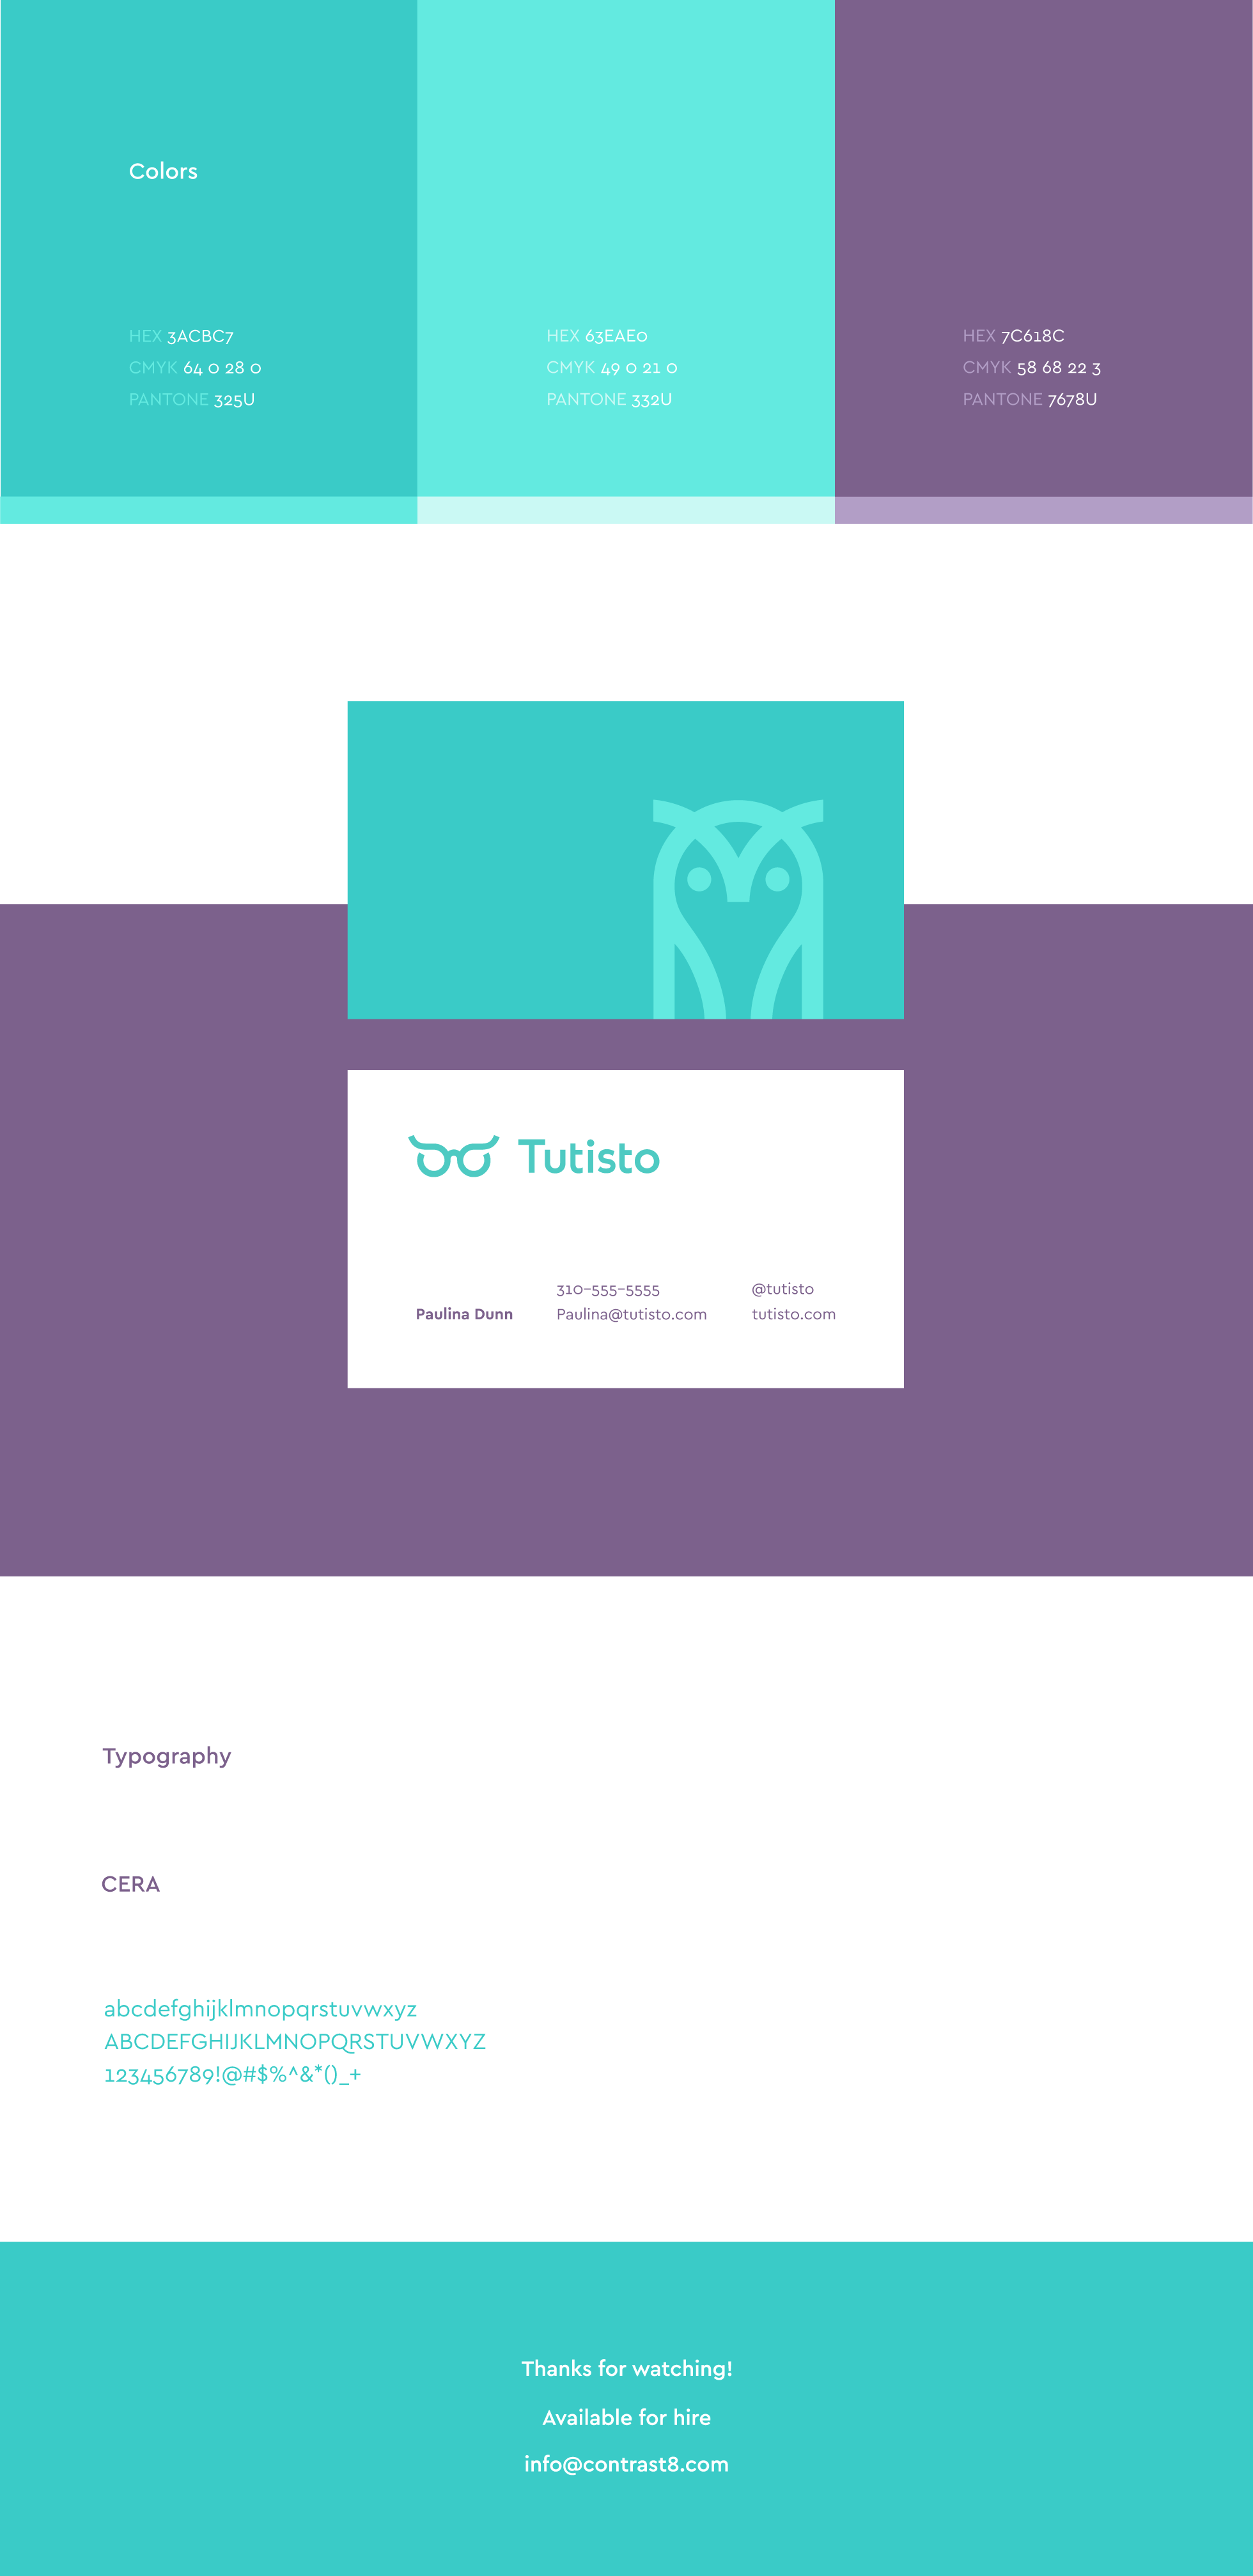 flat, creative and professional education logo. Combines two visuals. Owl and eyeglasses.